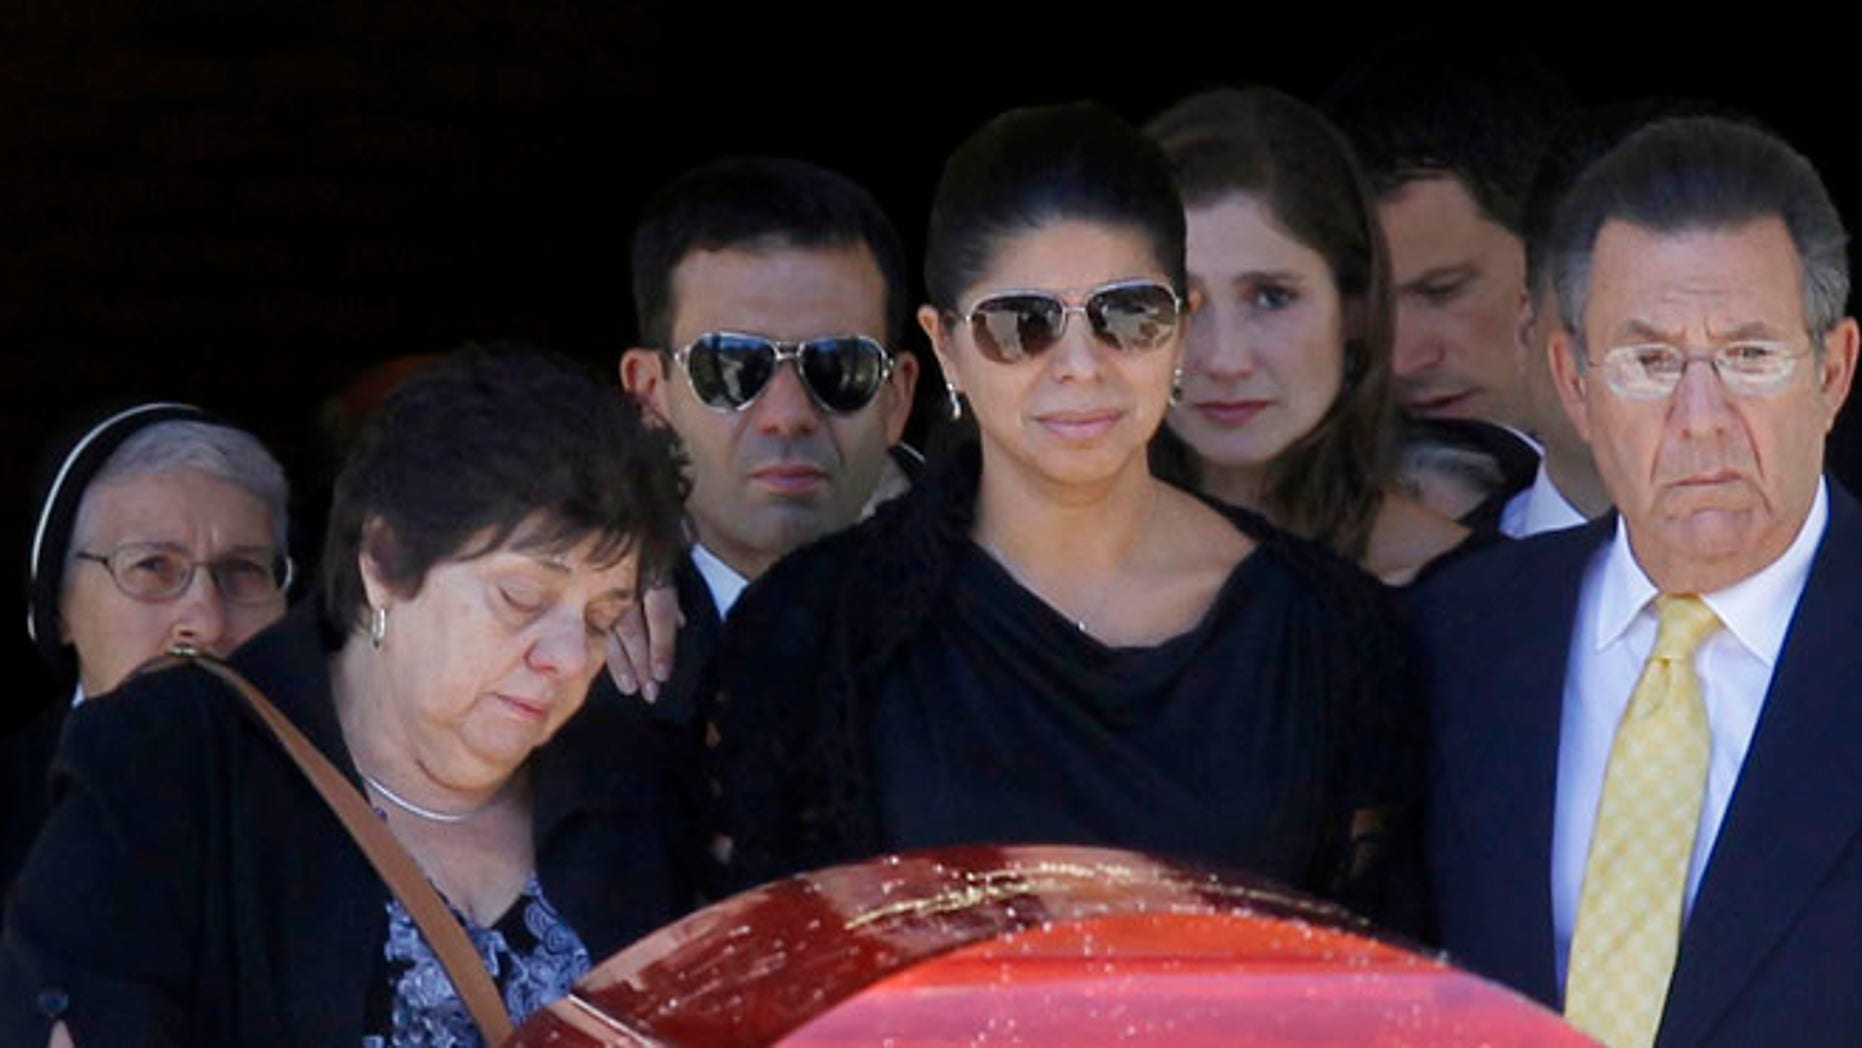 Aug. 29, 2012: Ivette Rivera, center, fiancee of Empire State Building shooting victim Steve Ercolino, is flanked by the victim's parents, Rosalie and Frank Ercolino, as they follow the coffin out after a funeral mass at Our Lady of Sorrows church in White Plains, N.Y.